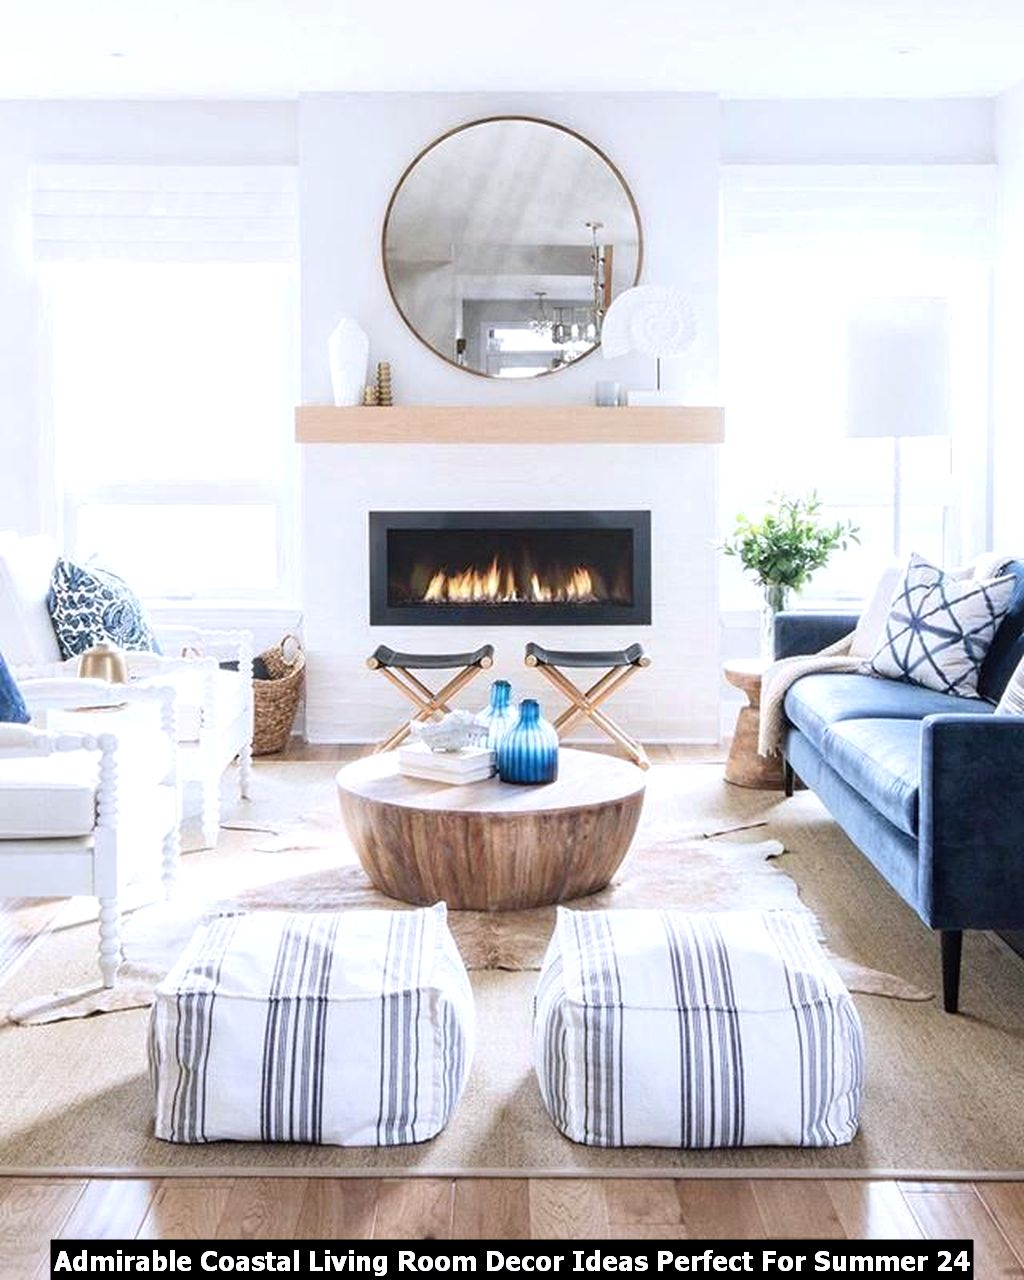 Admirable Coastal Living Room Decor Ideas Perfect For Summer 24